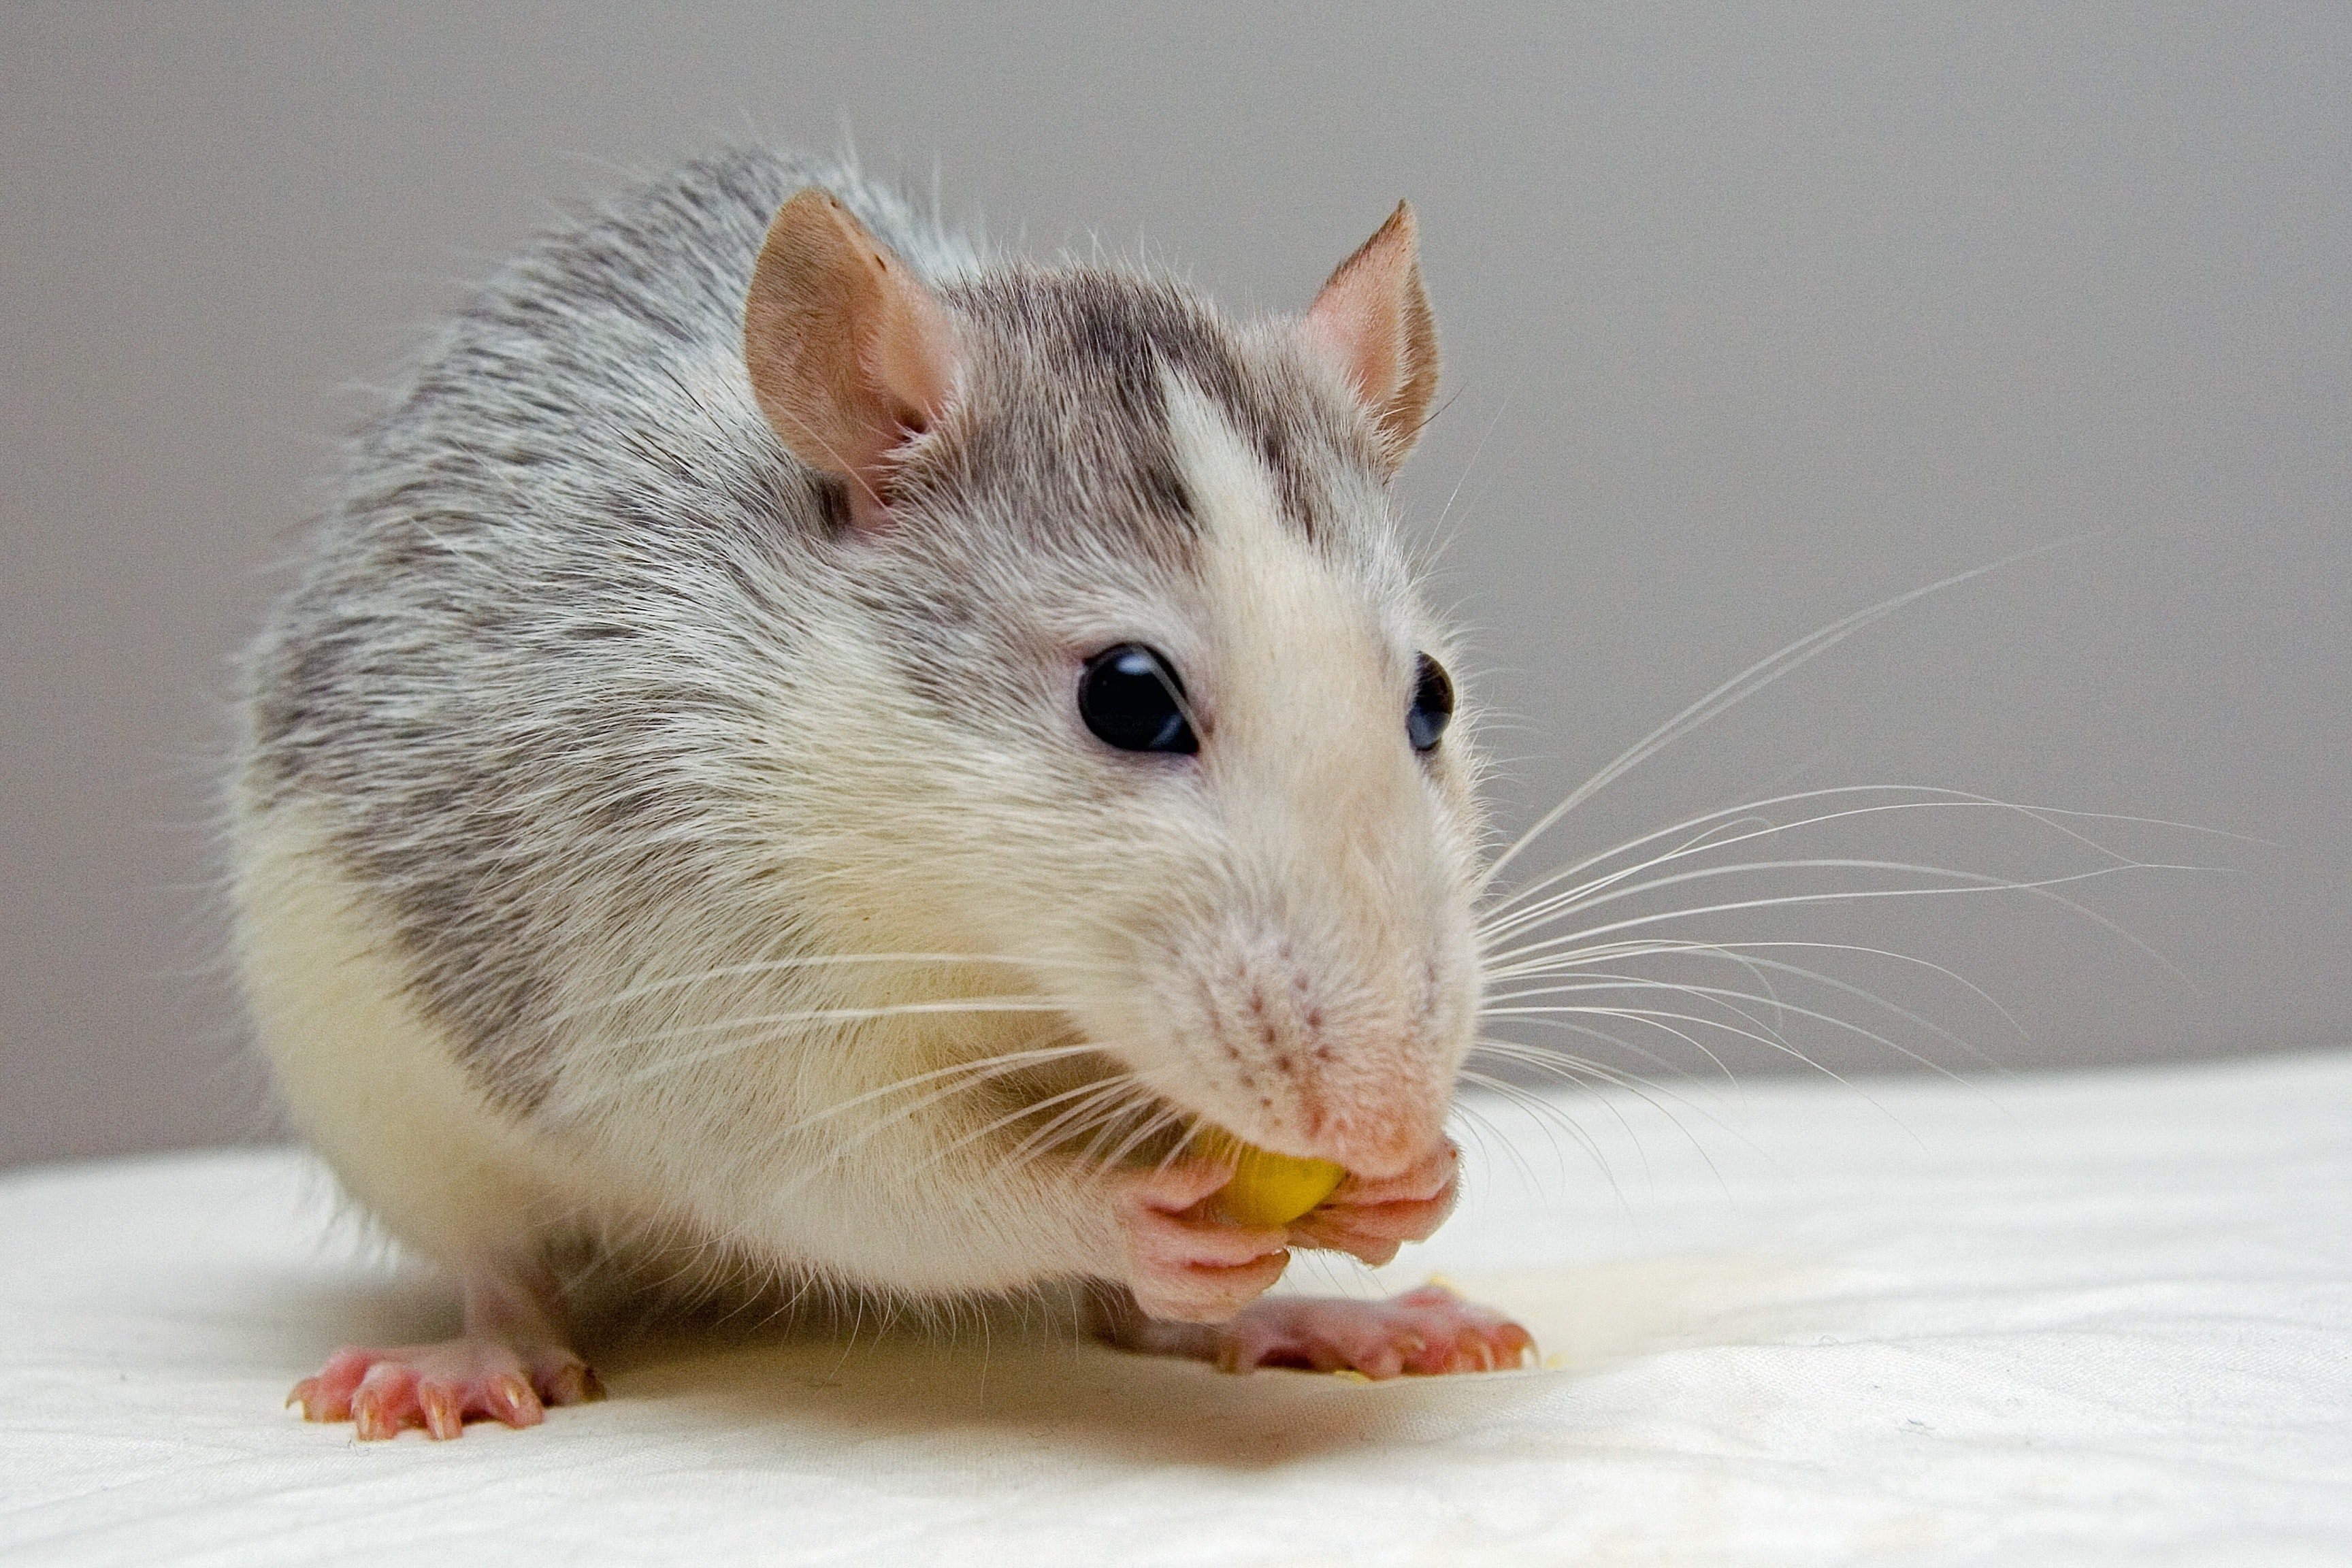 Worms in the gut keep mice from getting plump on high-fat food